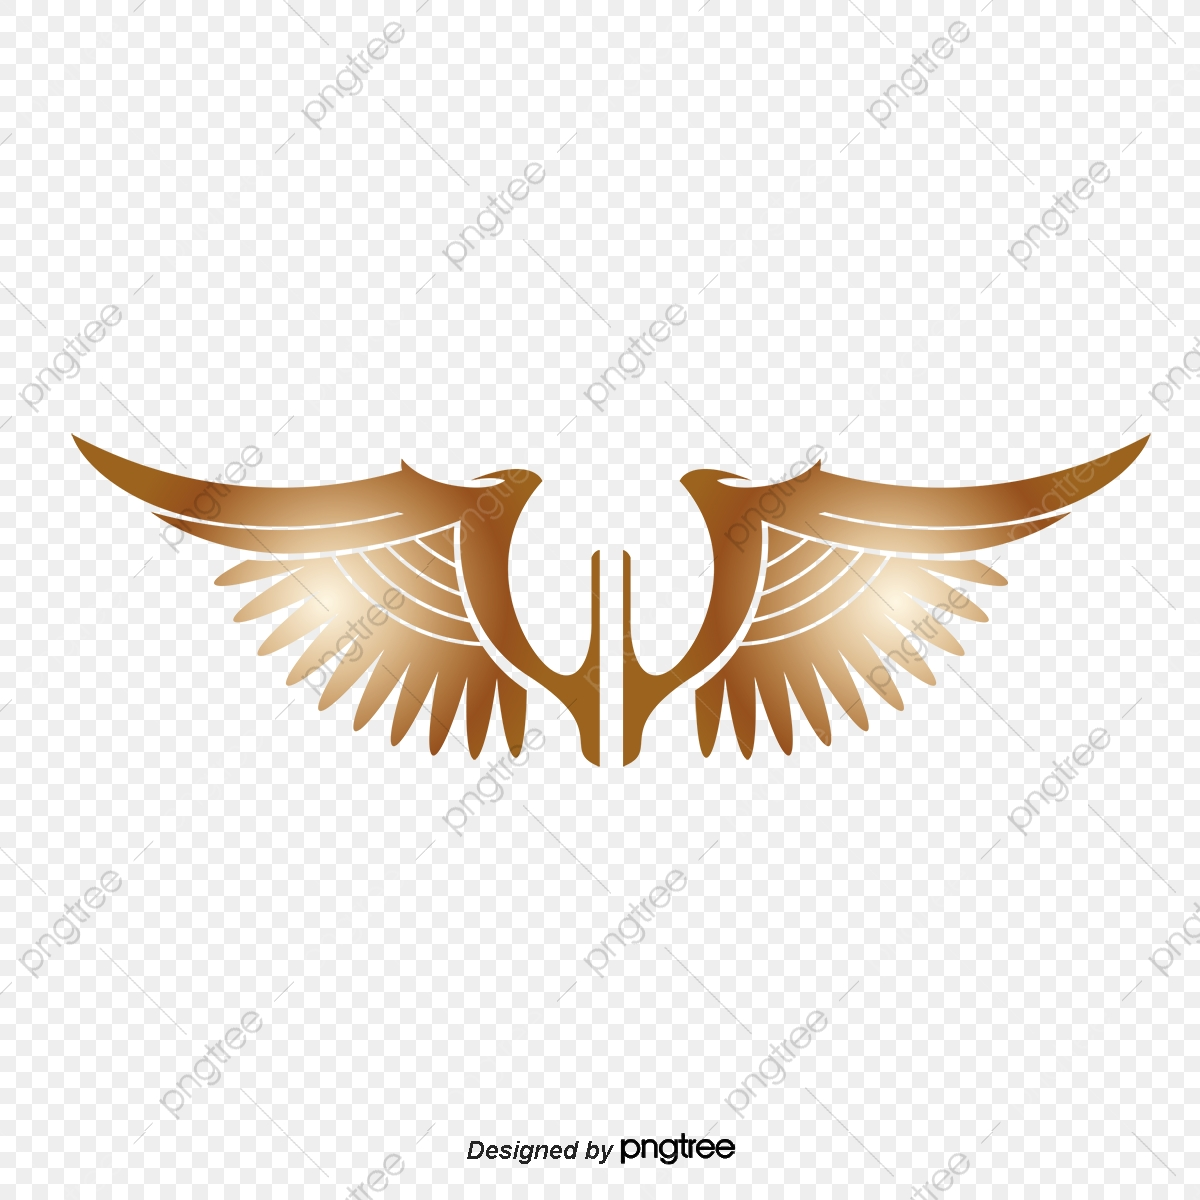 Wings Png Vector Material, Golden Wings, Hand Painted, Golden PNG.